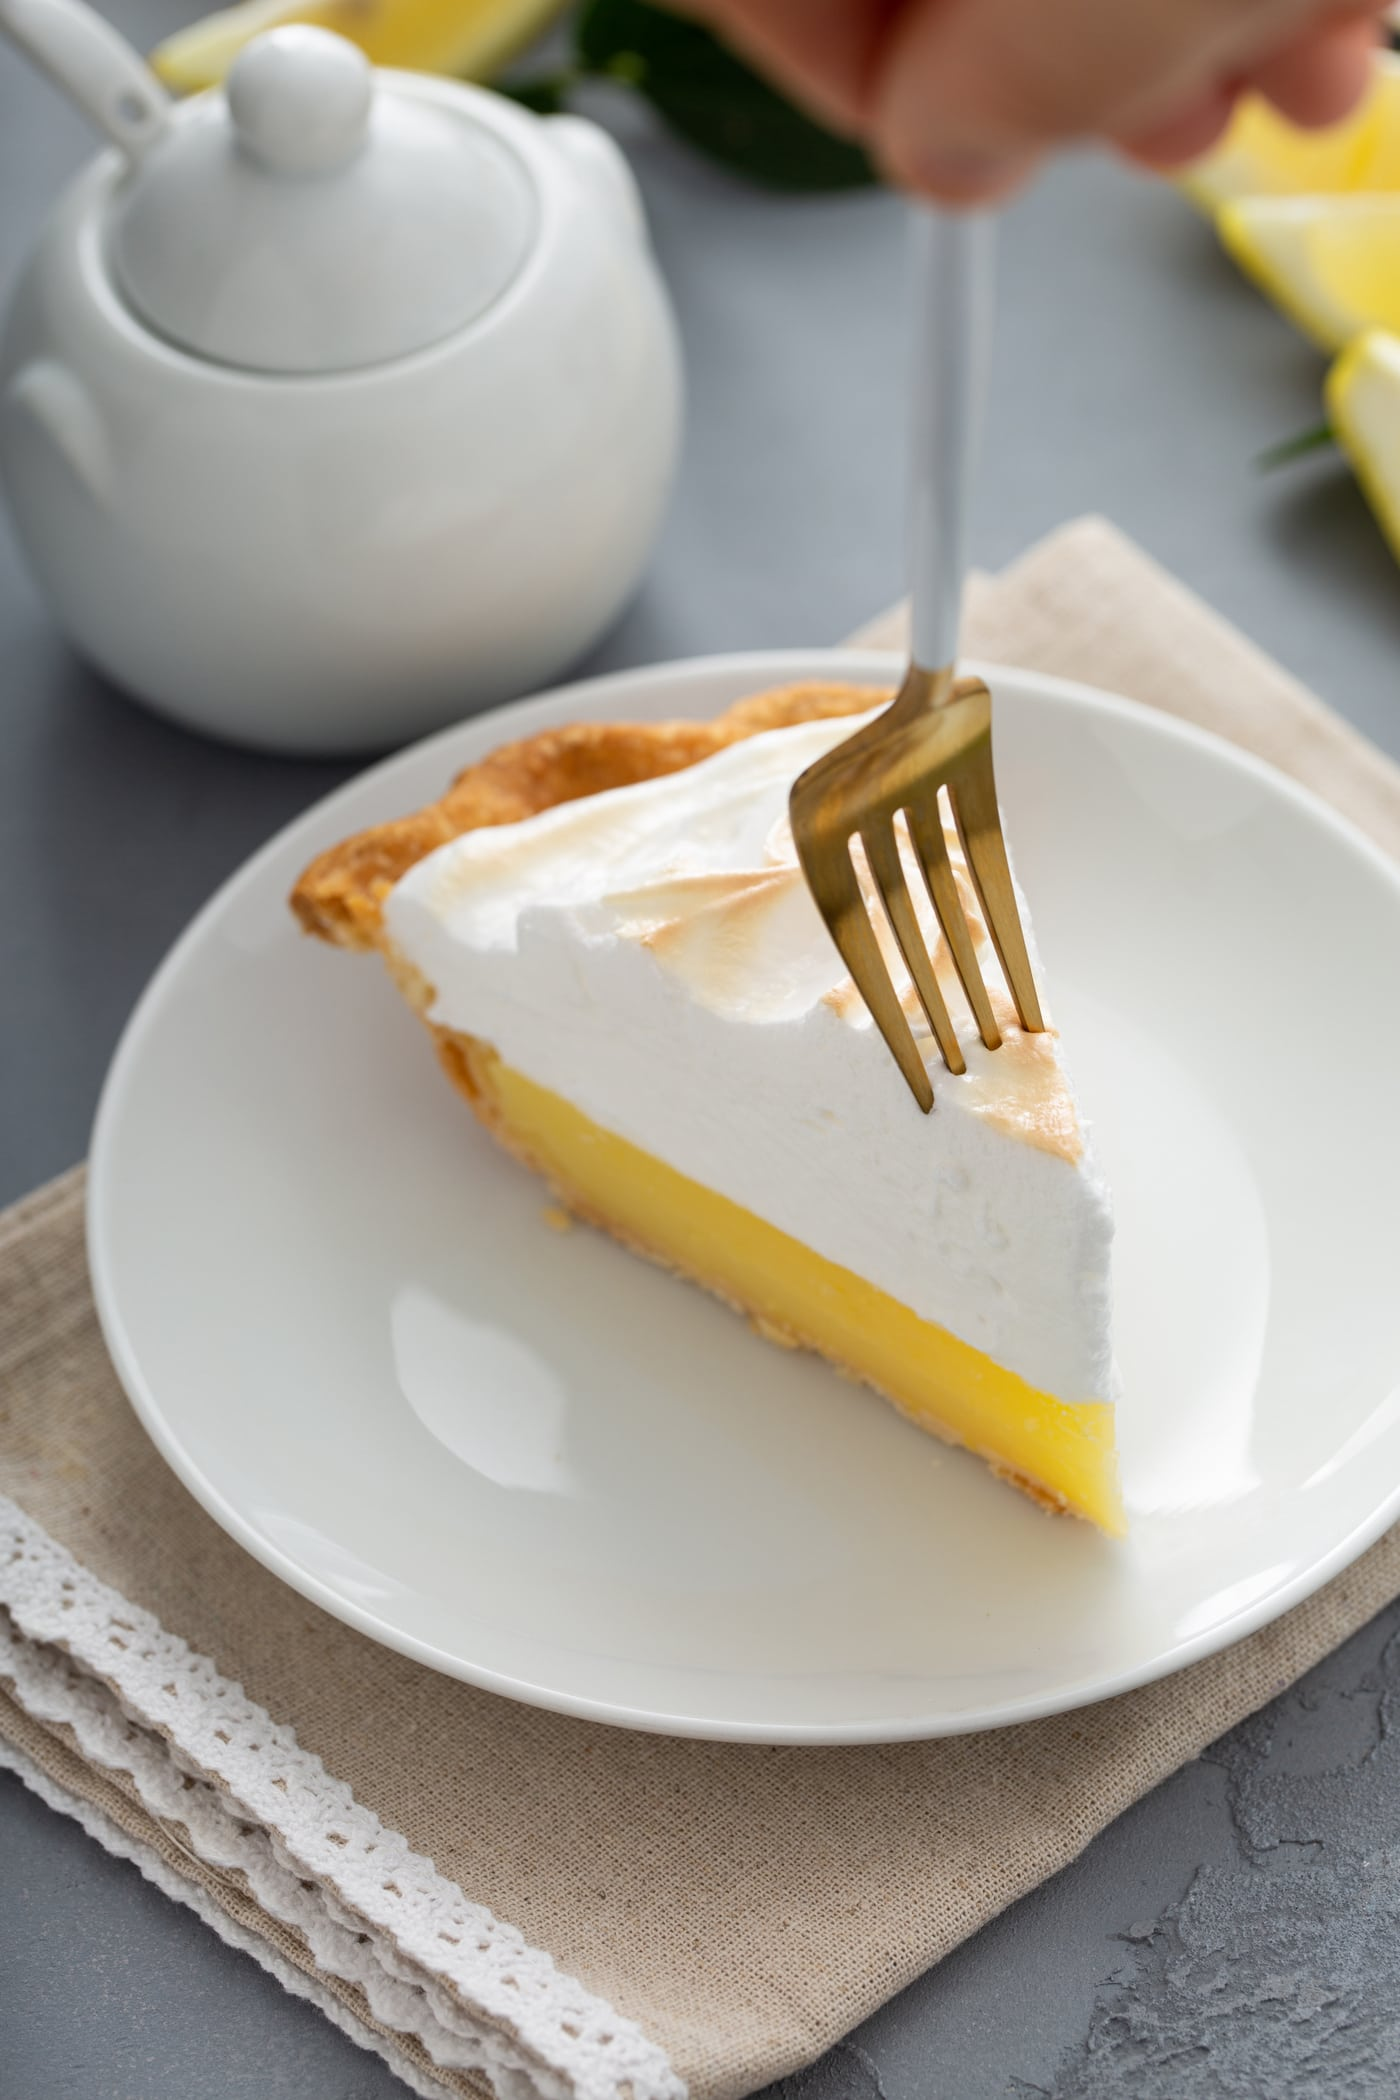 A piece of lemon meringue pie. A fork is piercing the tip of the slice.